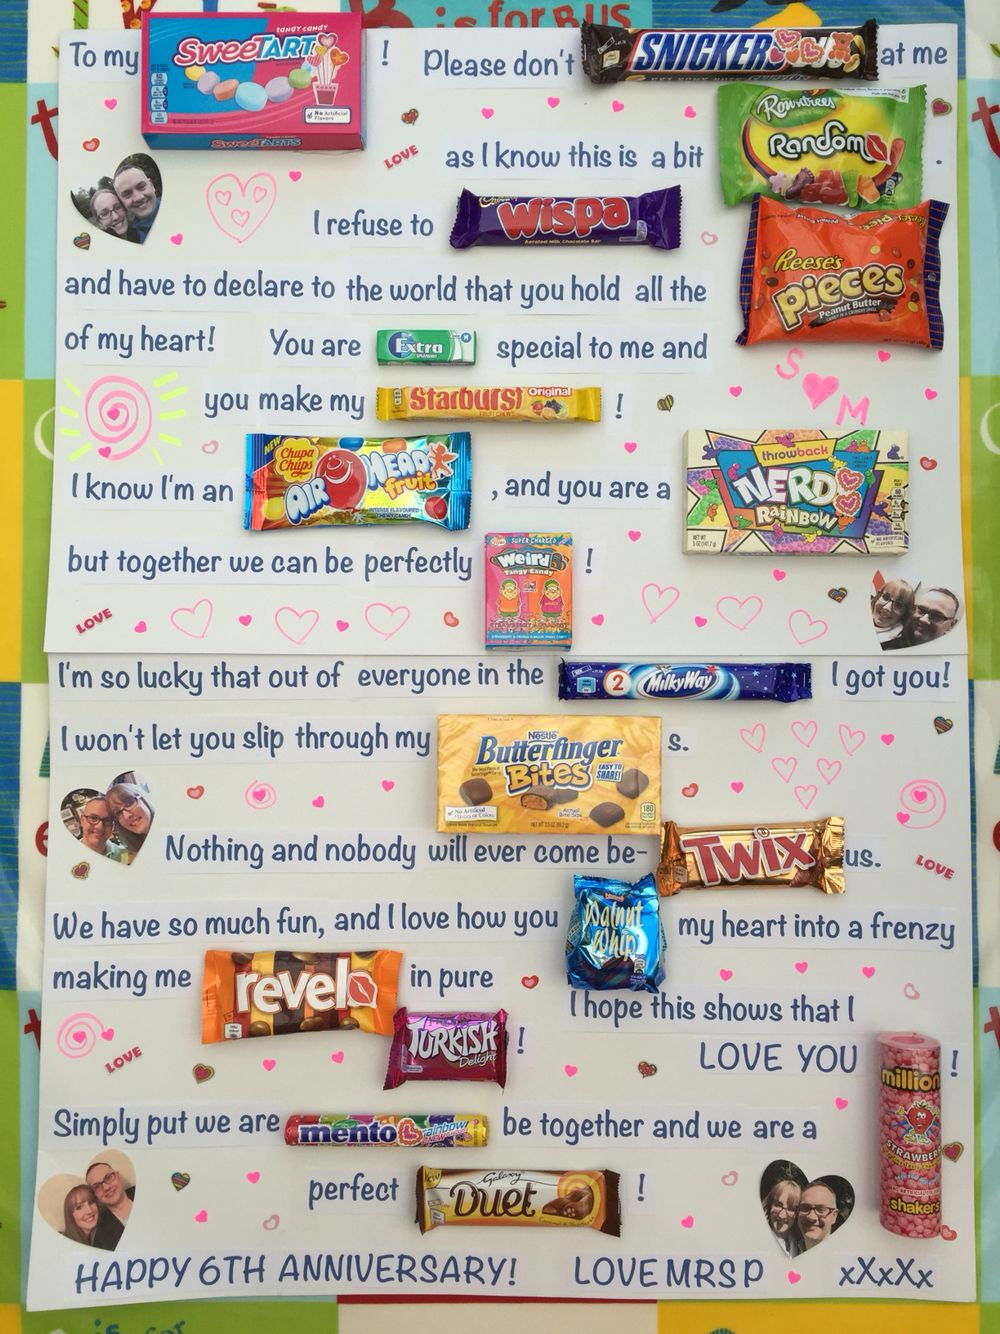 6th wedding anniversary gift Candy poster board for our 6 year wedding anniversary